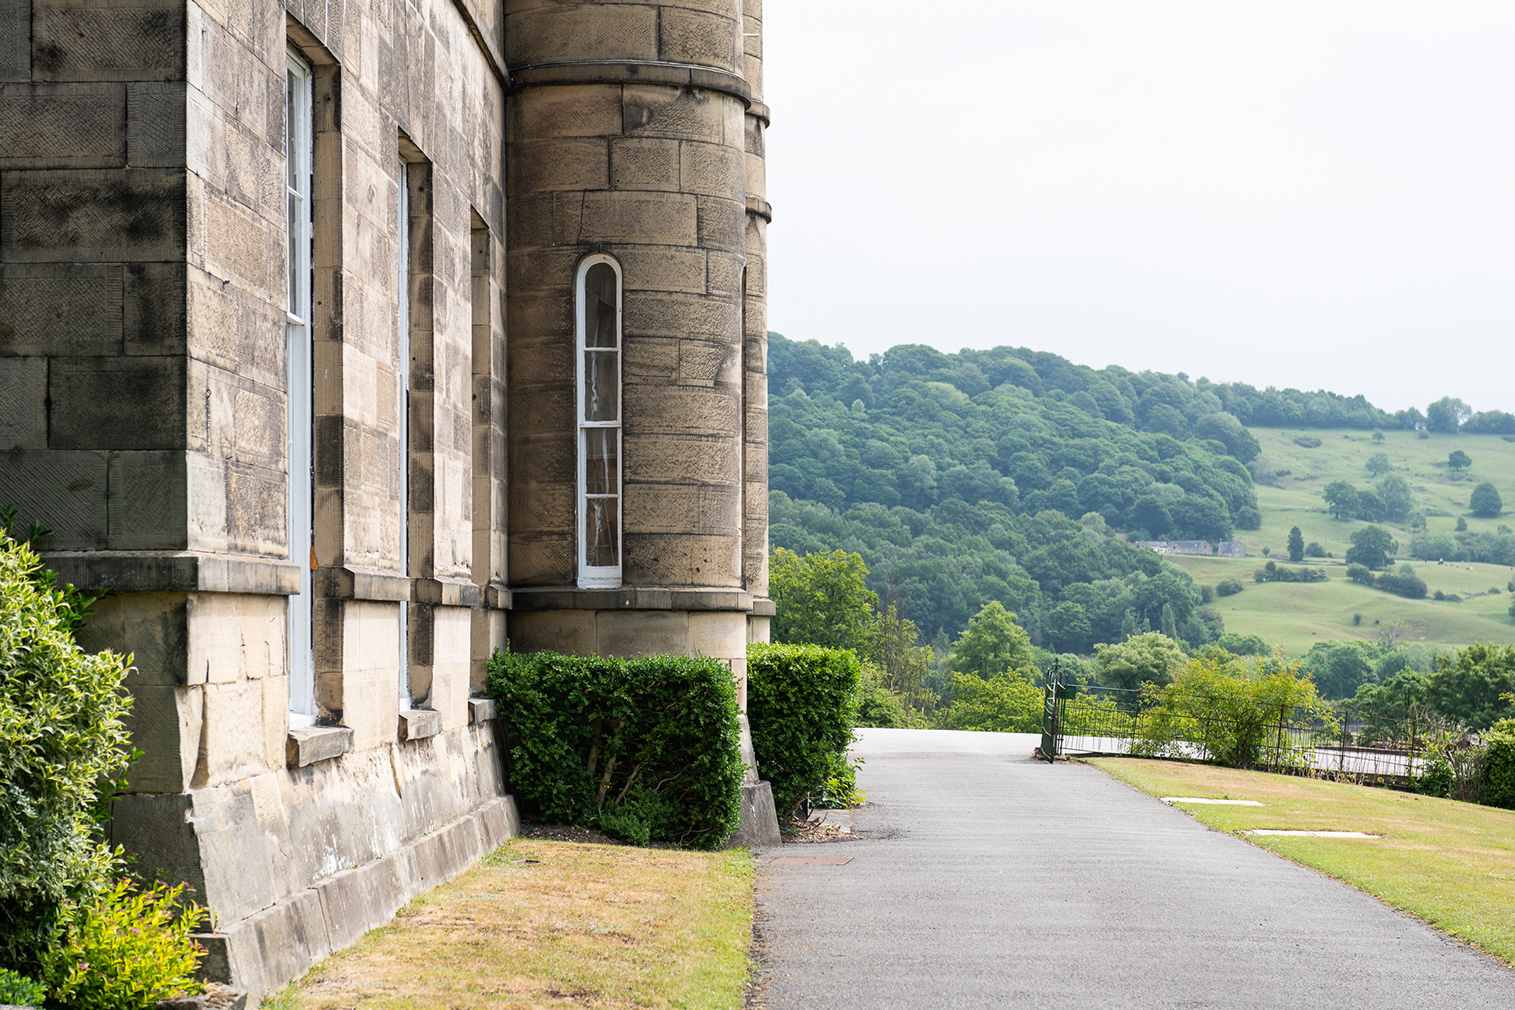 Derbyshire country residence Willersley Castle is on the market for £4m as it seeks a new custodian to run it as a hotel or grand private home.